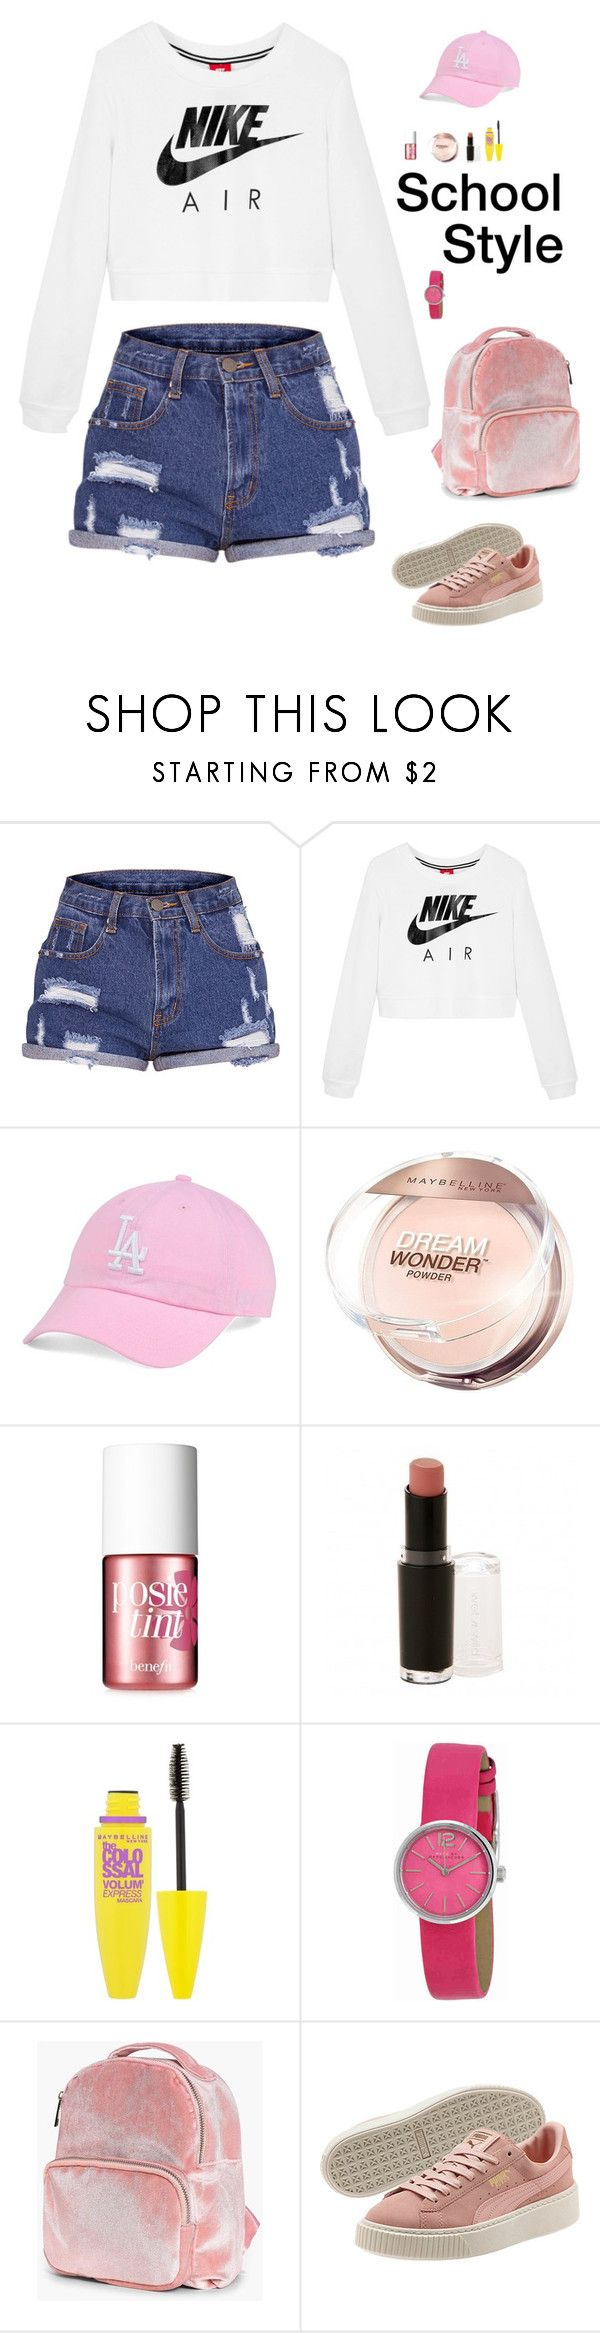 """School Style (3)"" by irisazlou on Polyvore featuring NIKE, '47 Brand, Maybelline, Benefit, Wet n Wild, Marc by Marc Jacobs and Boohoo"